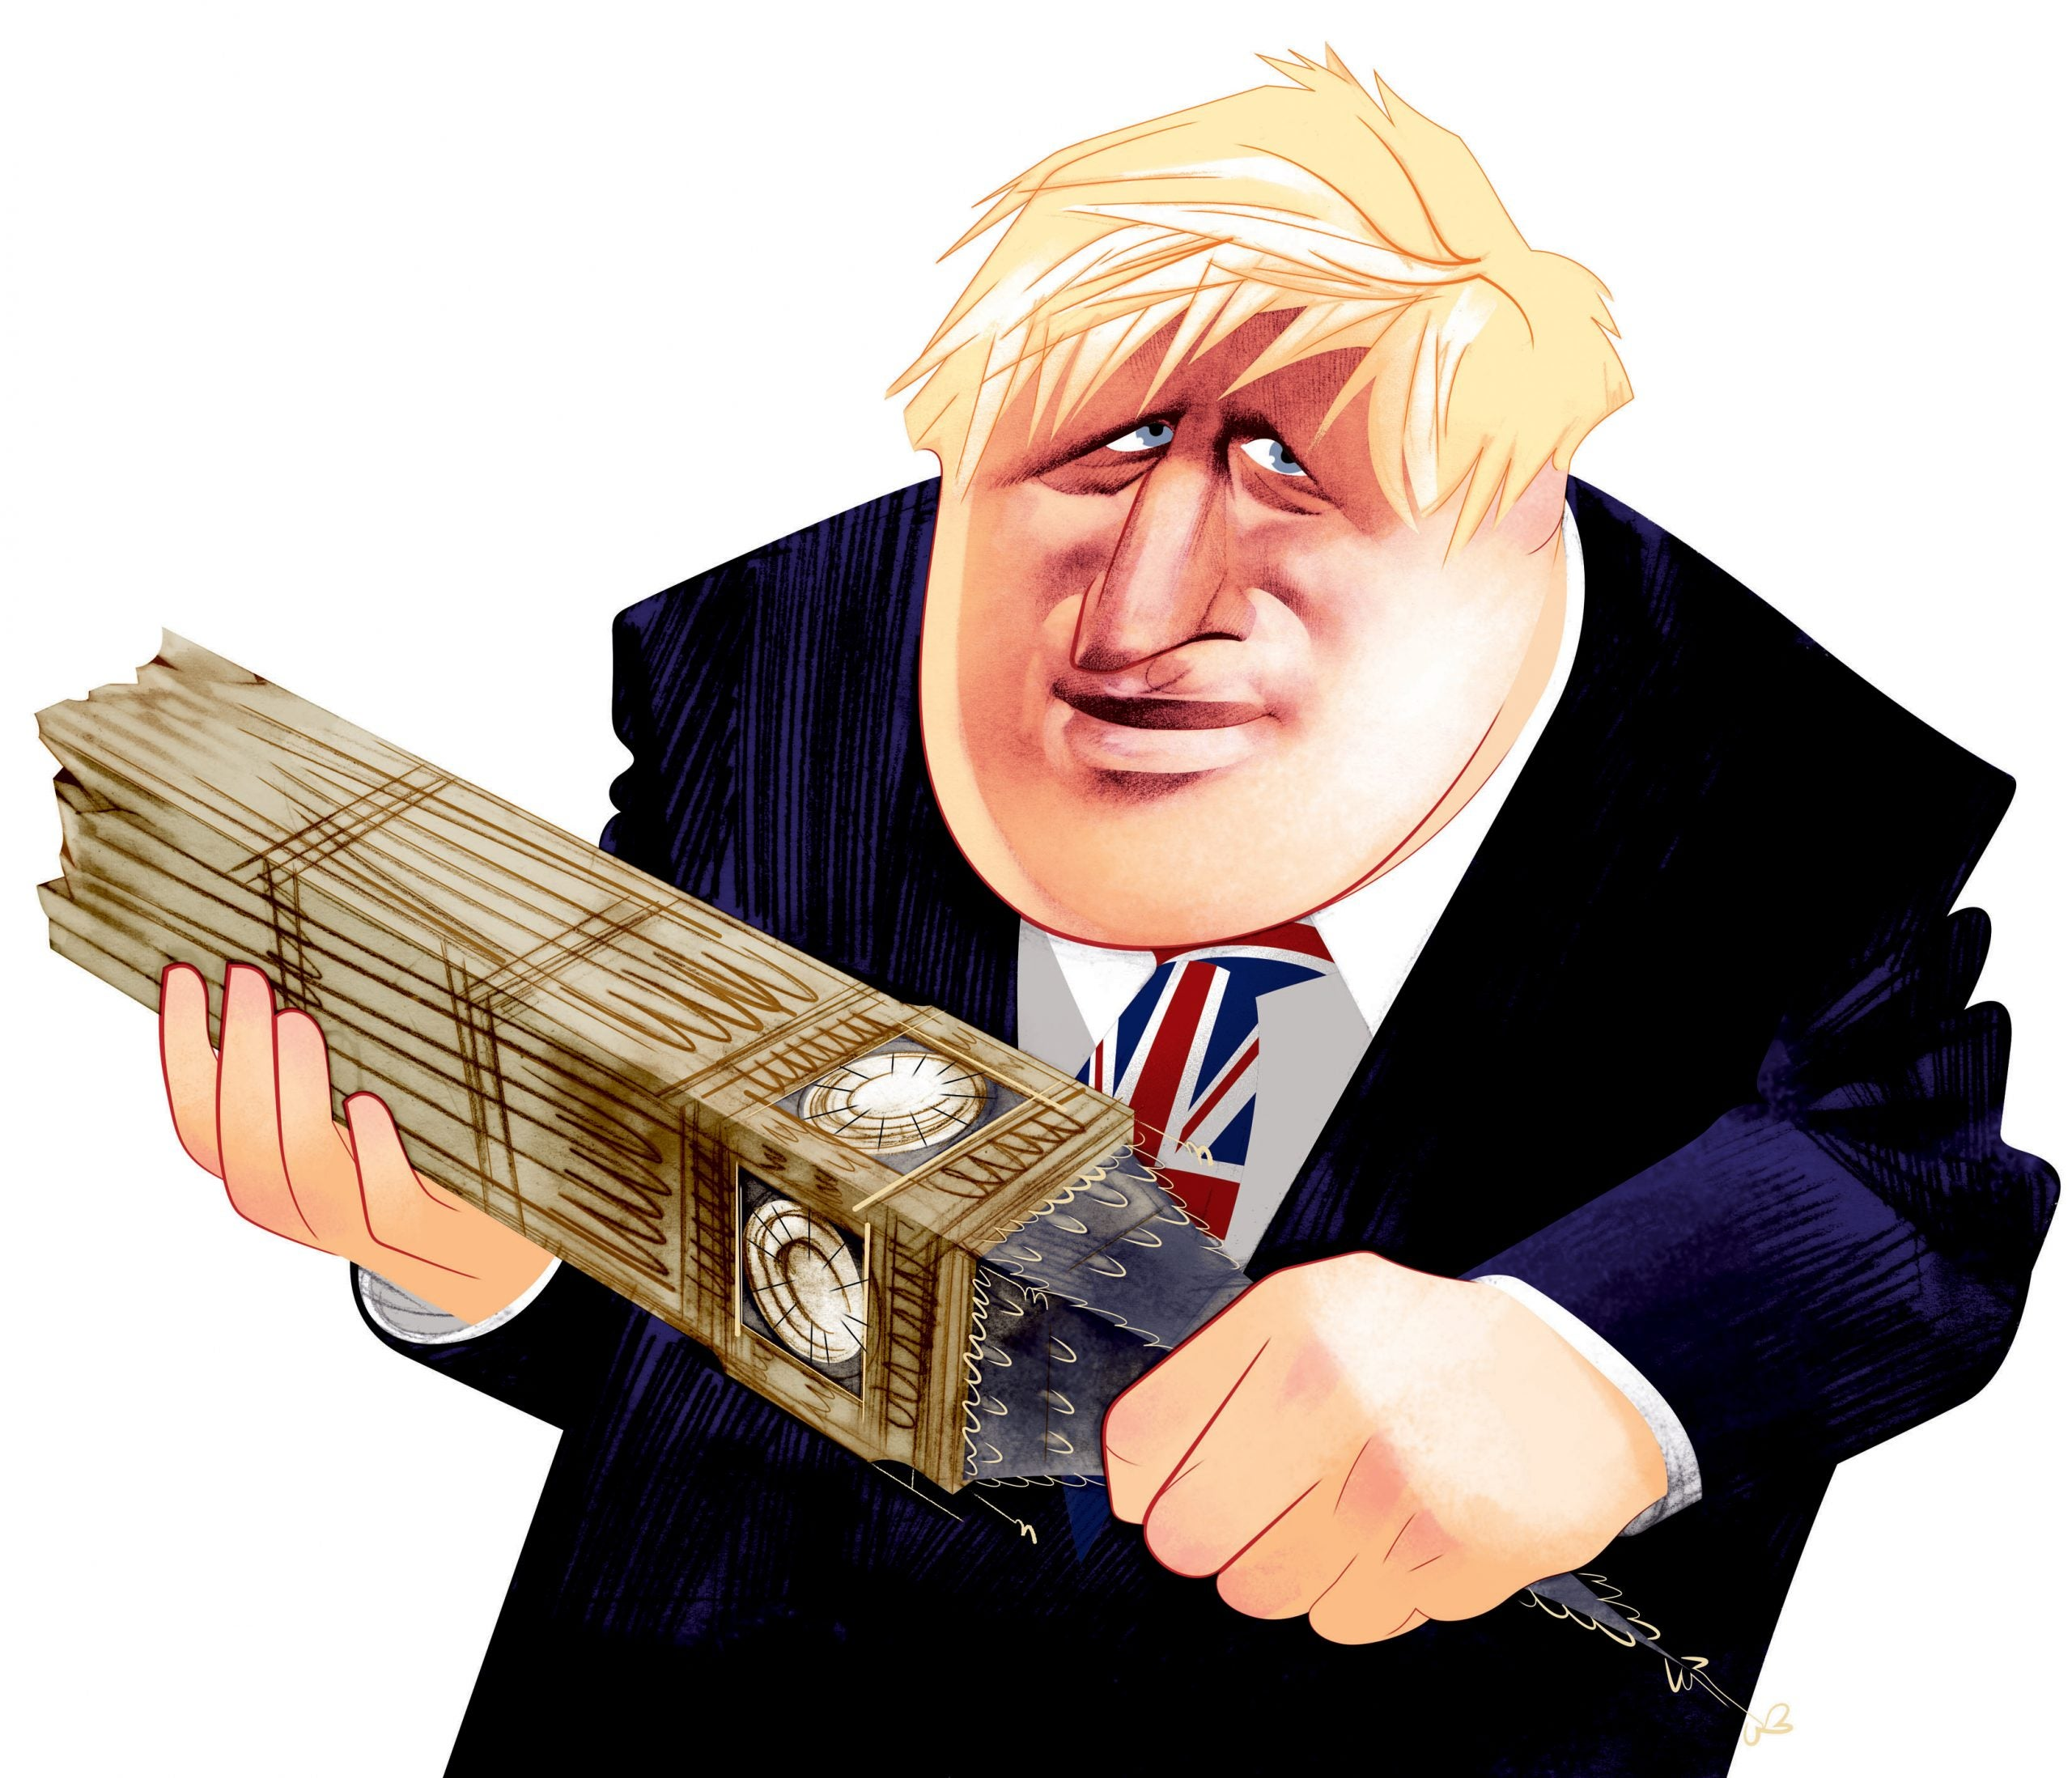 Boris Johnson is a pagan whose singular character and embrace of risk sets him apart from his caste